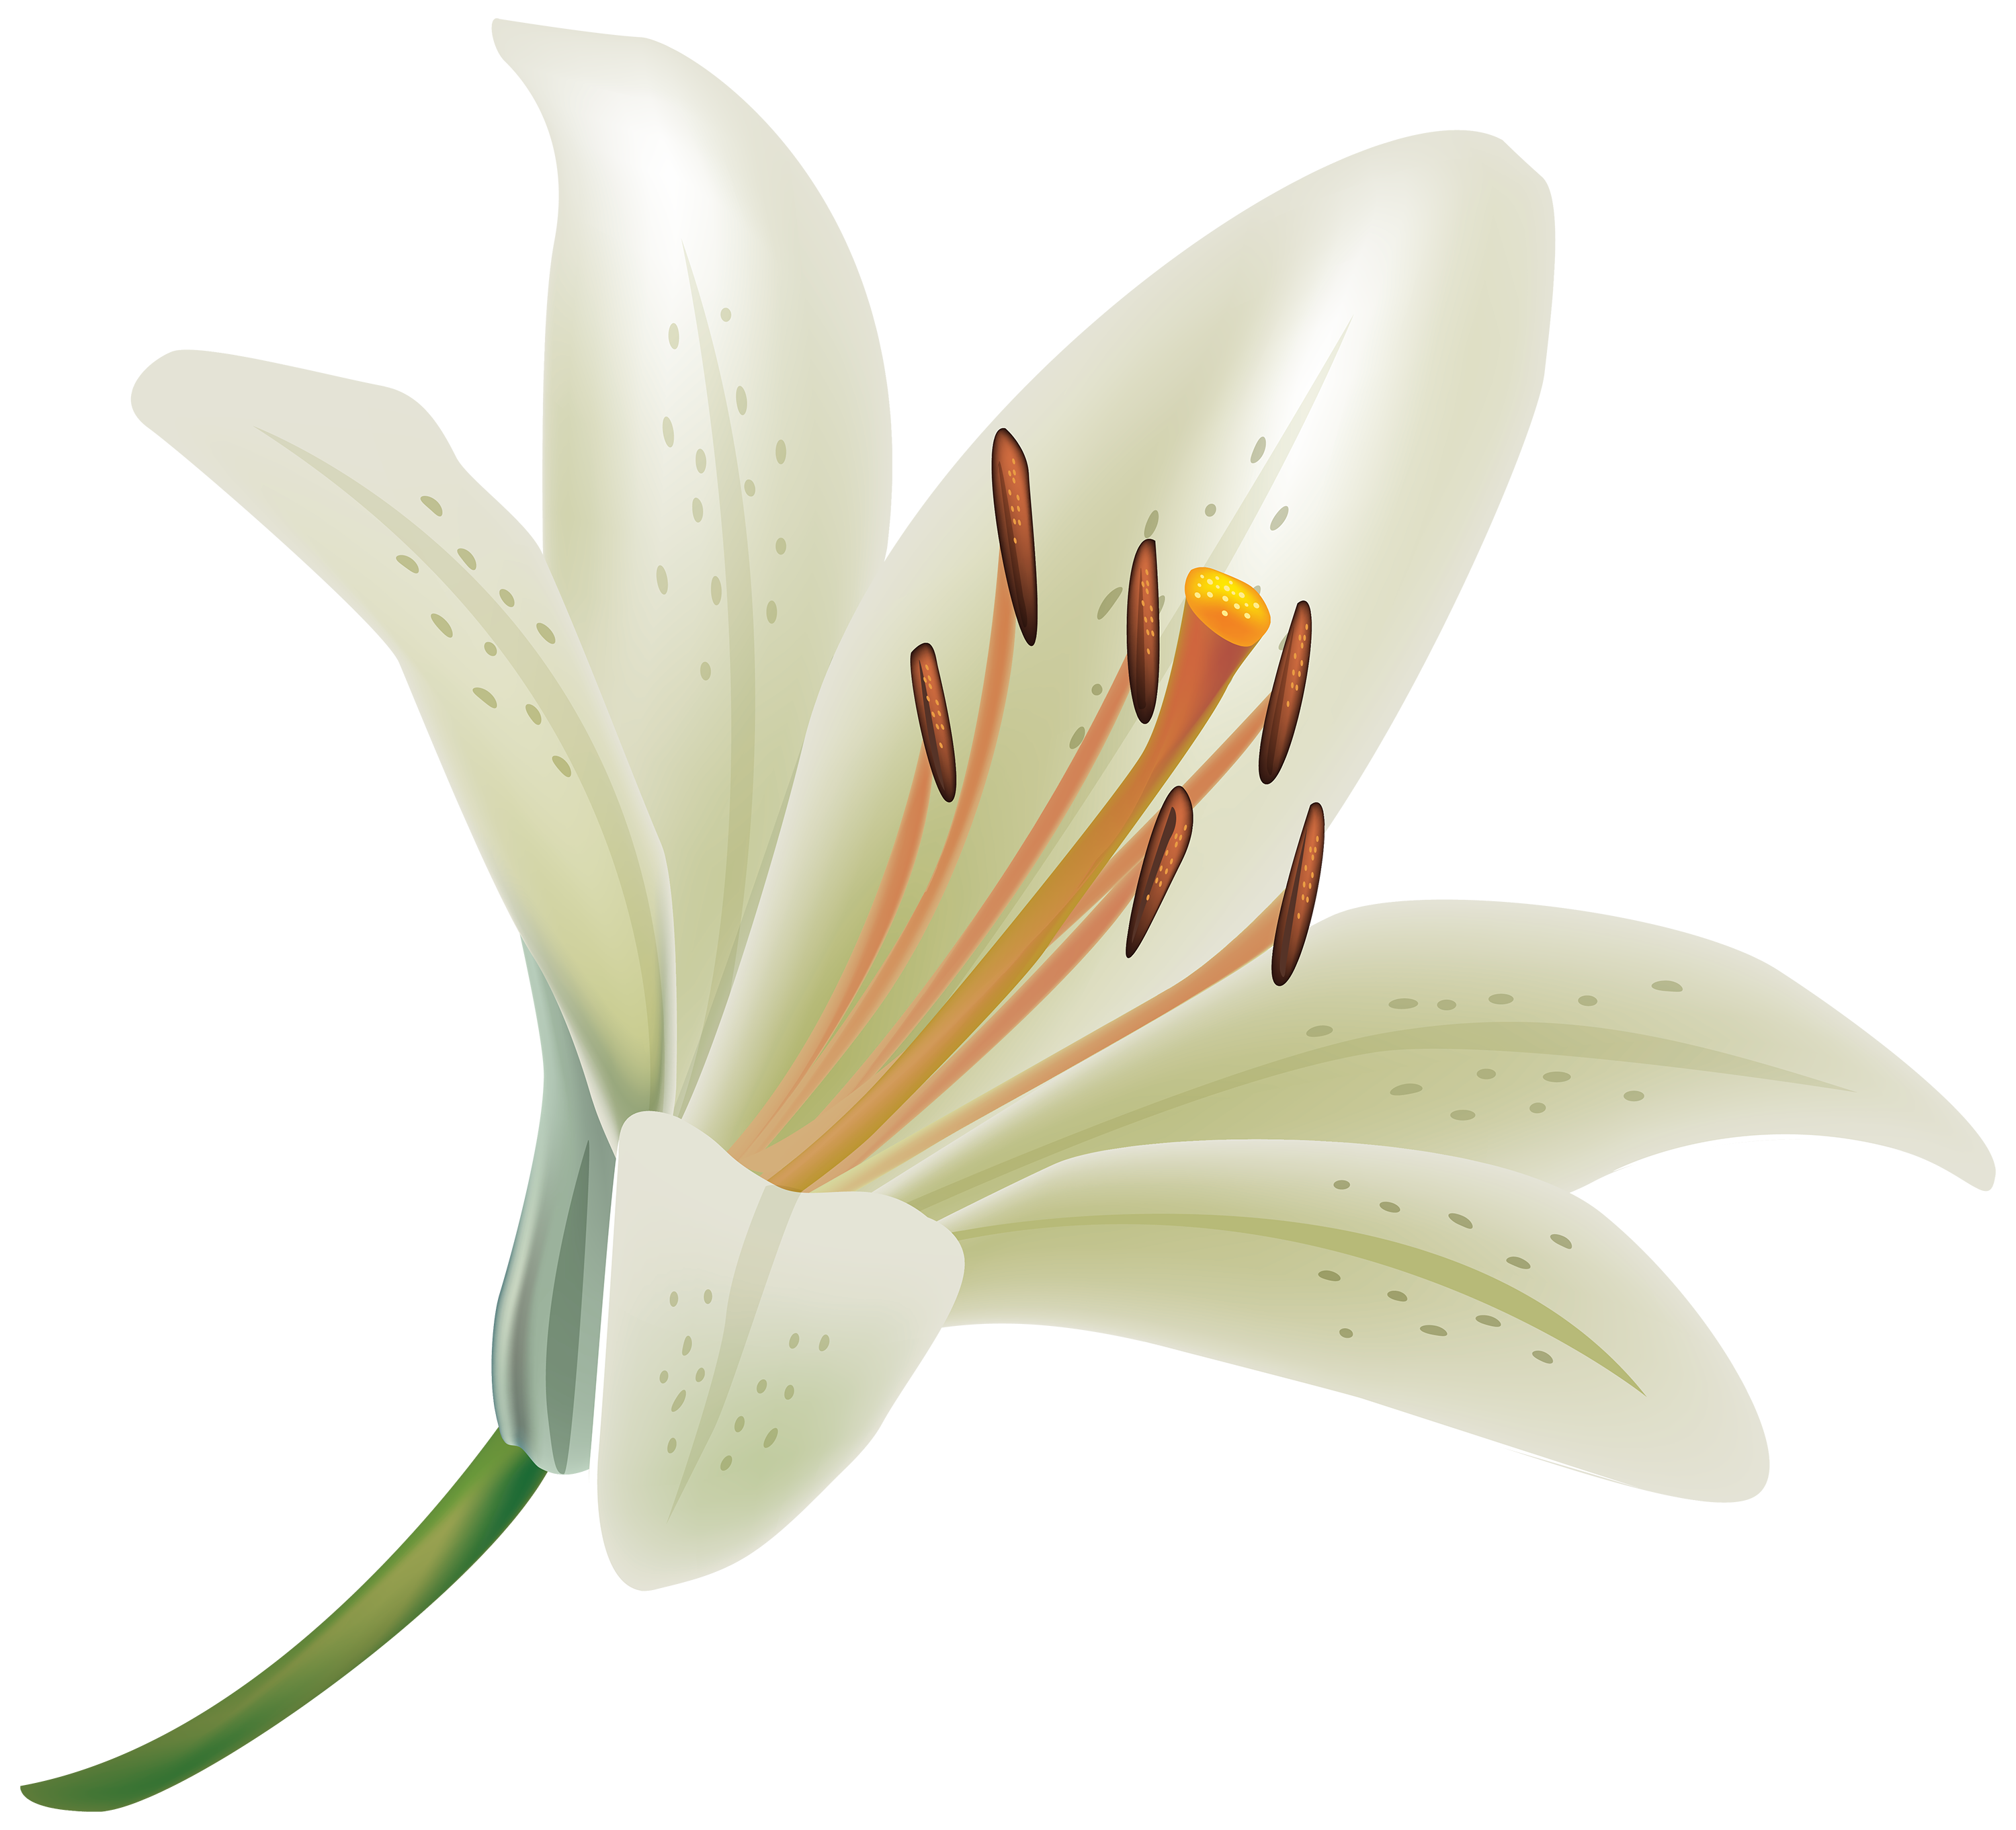 Lilies flower free cut out 18547 transparentpng lilies flower free cut out izmirmasajfo